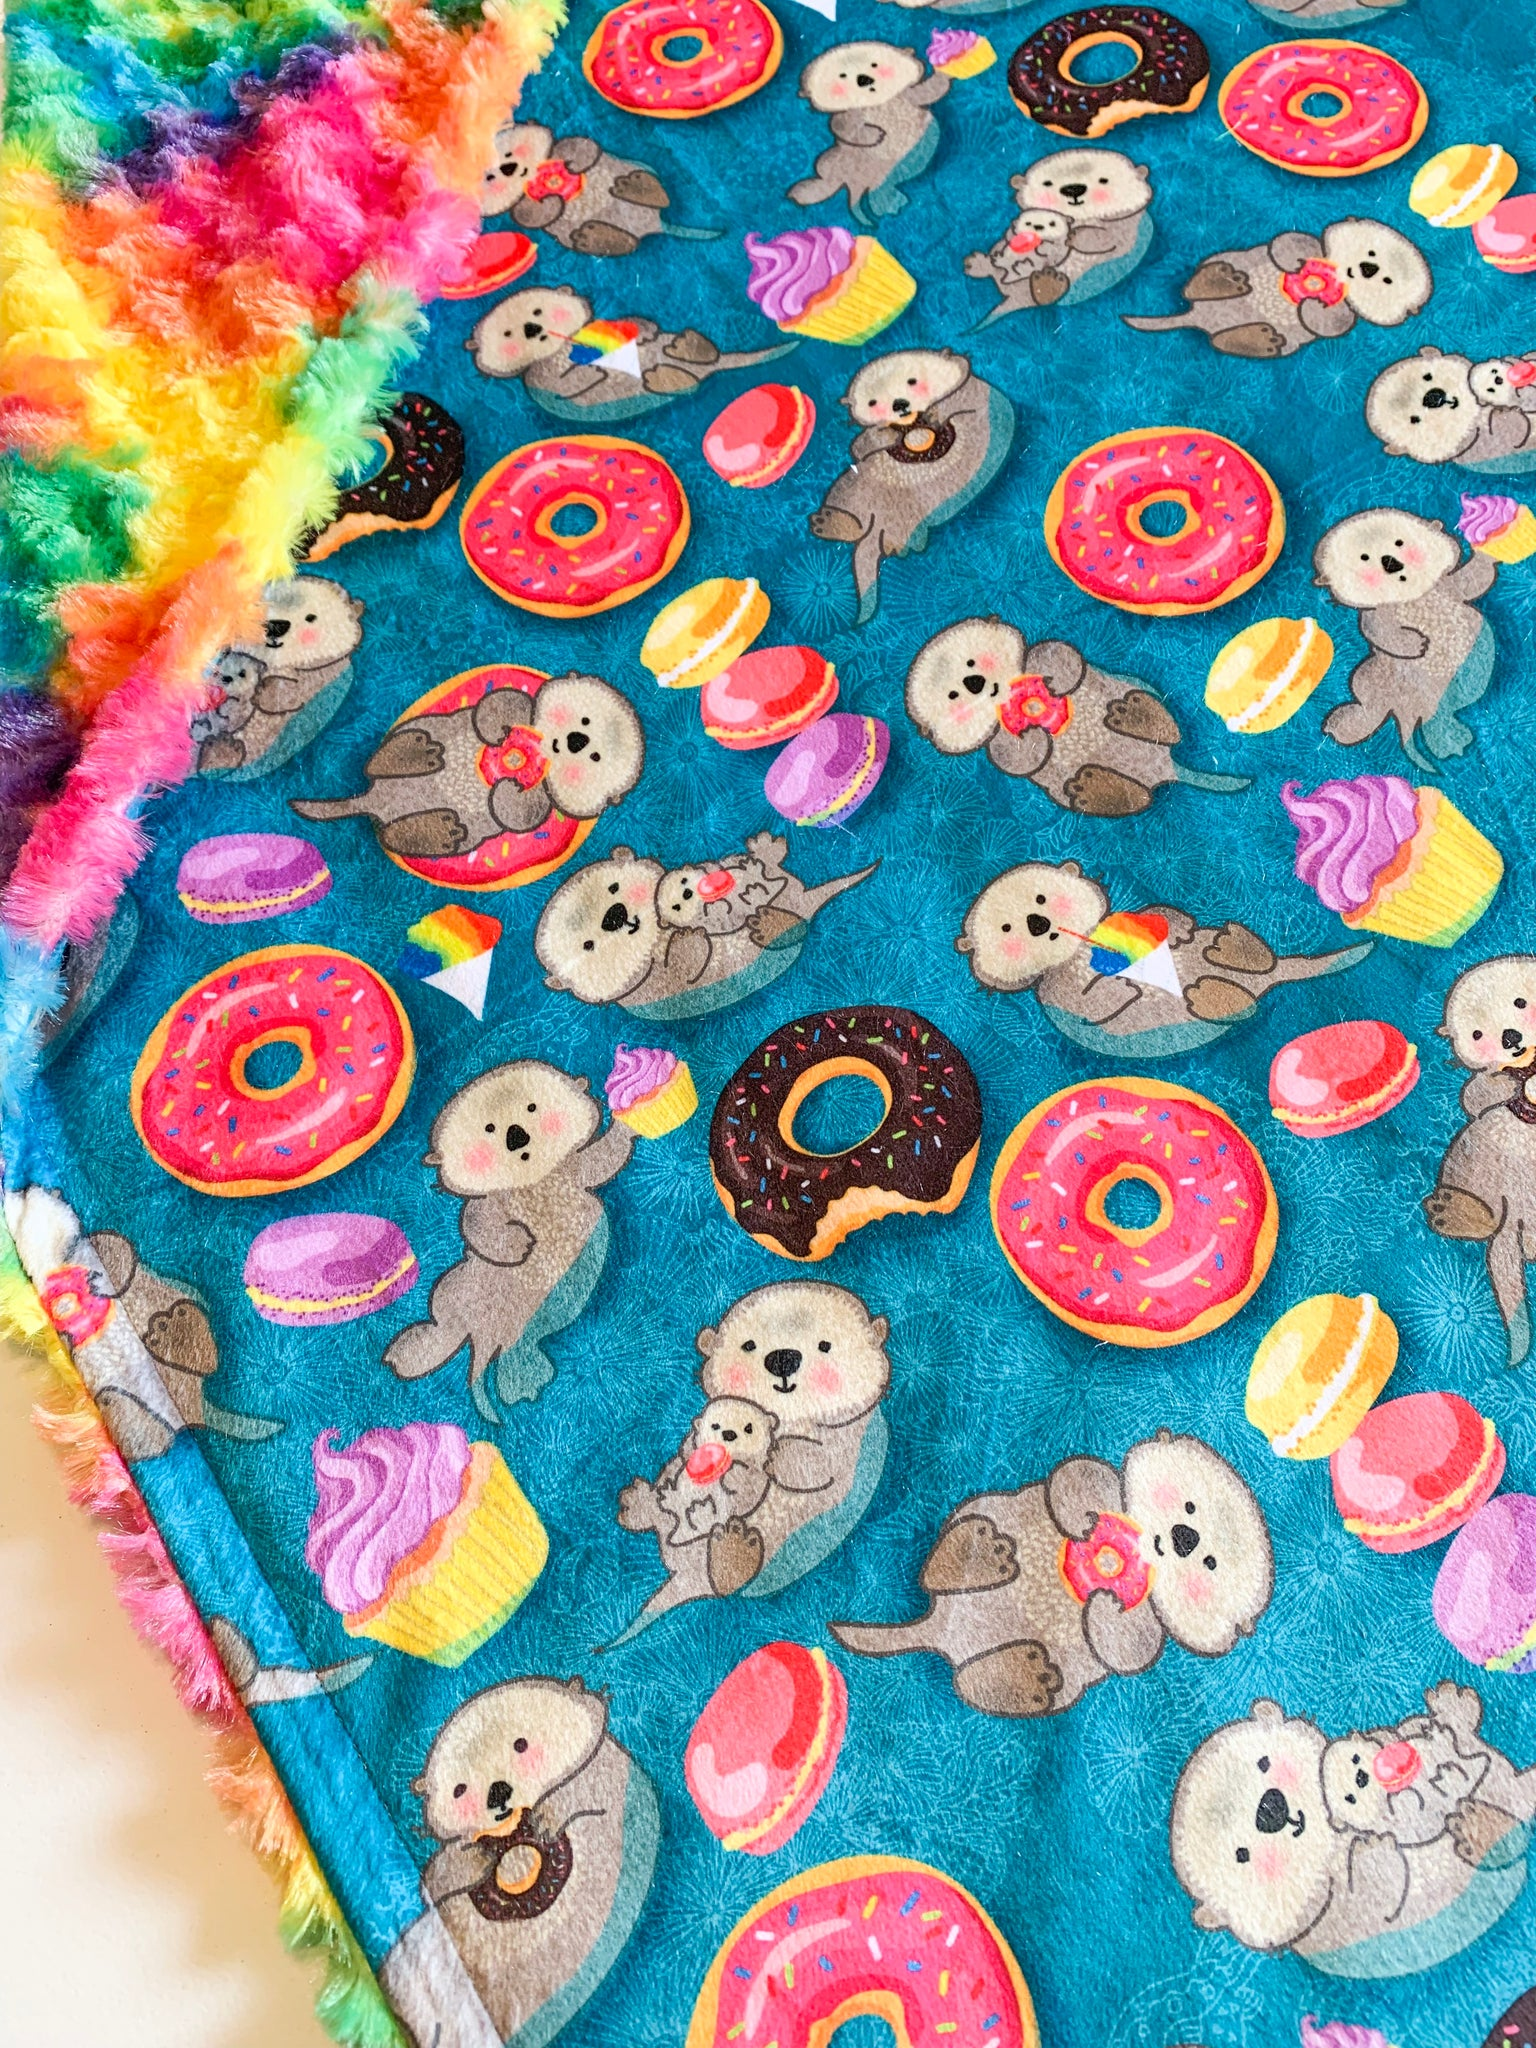 Otter Play Days Blanket